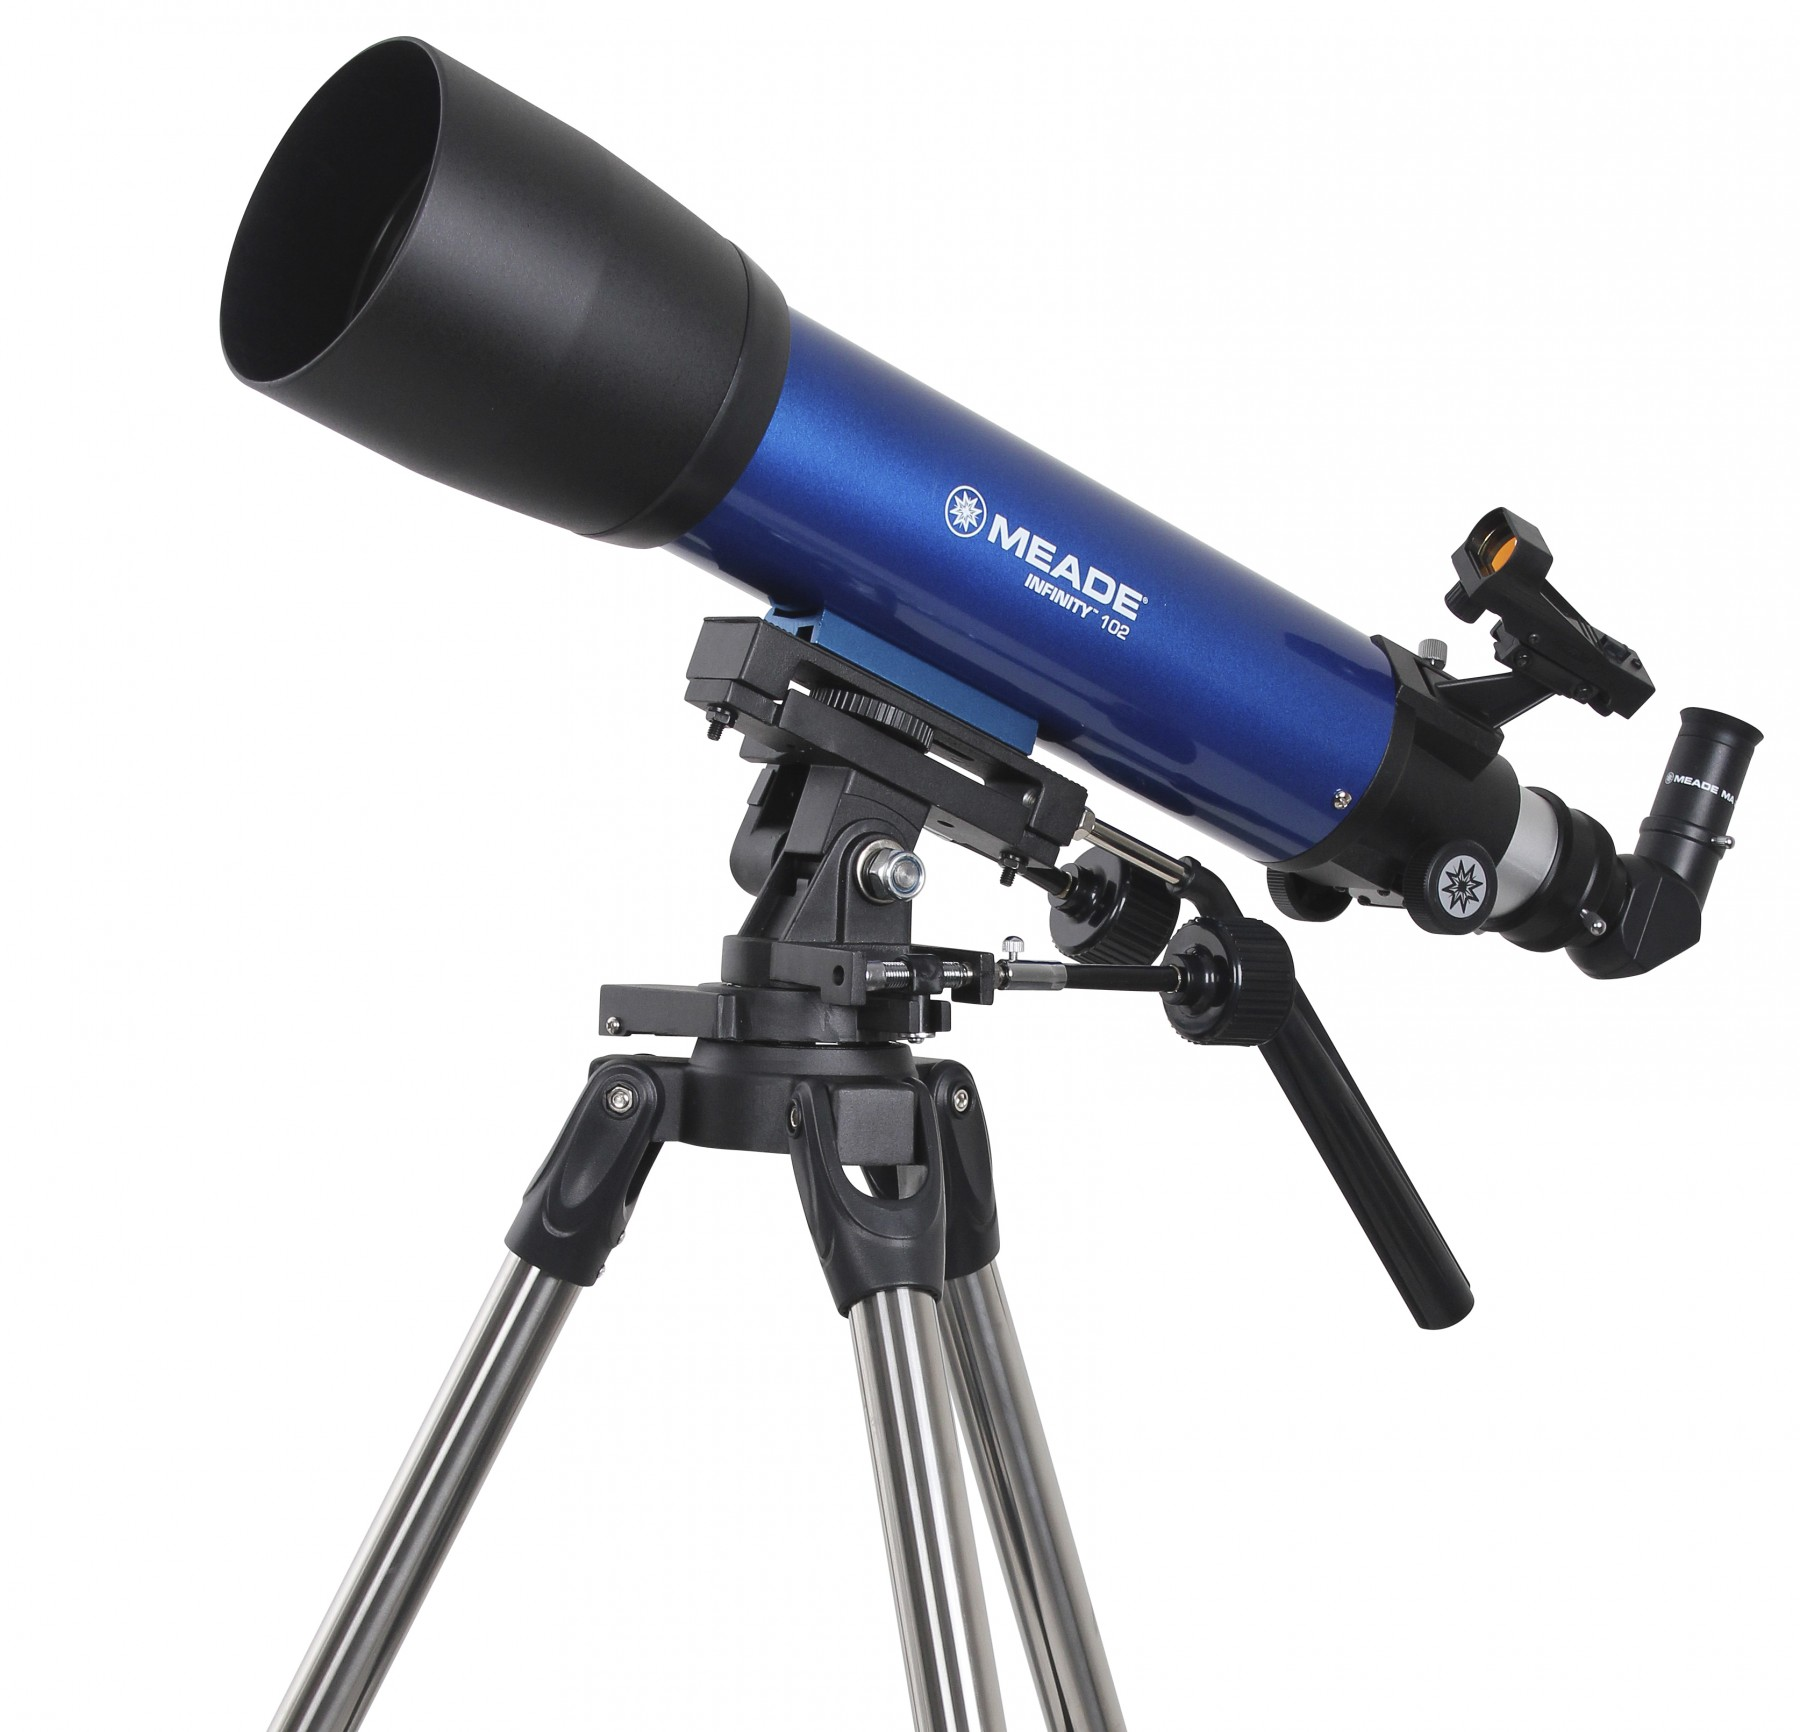 Meade Instruments Infinity 50mm Altazimuth Refractor Telescope by Meade